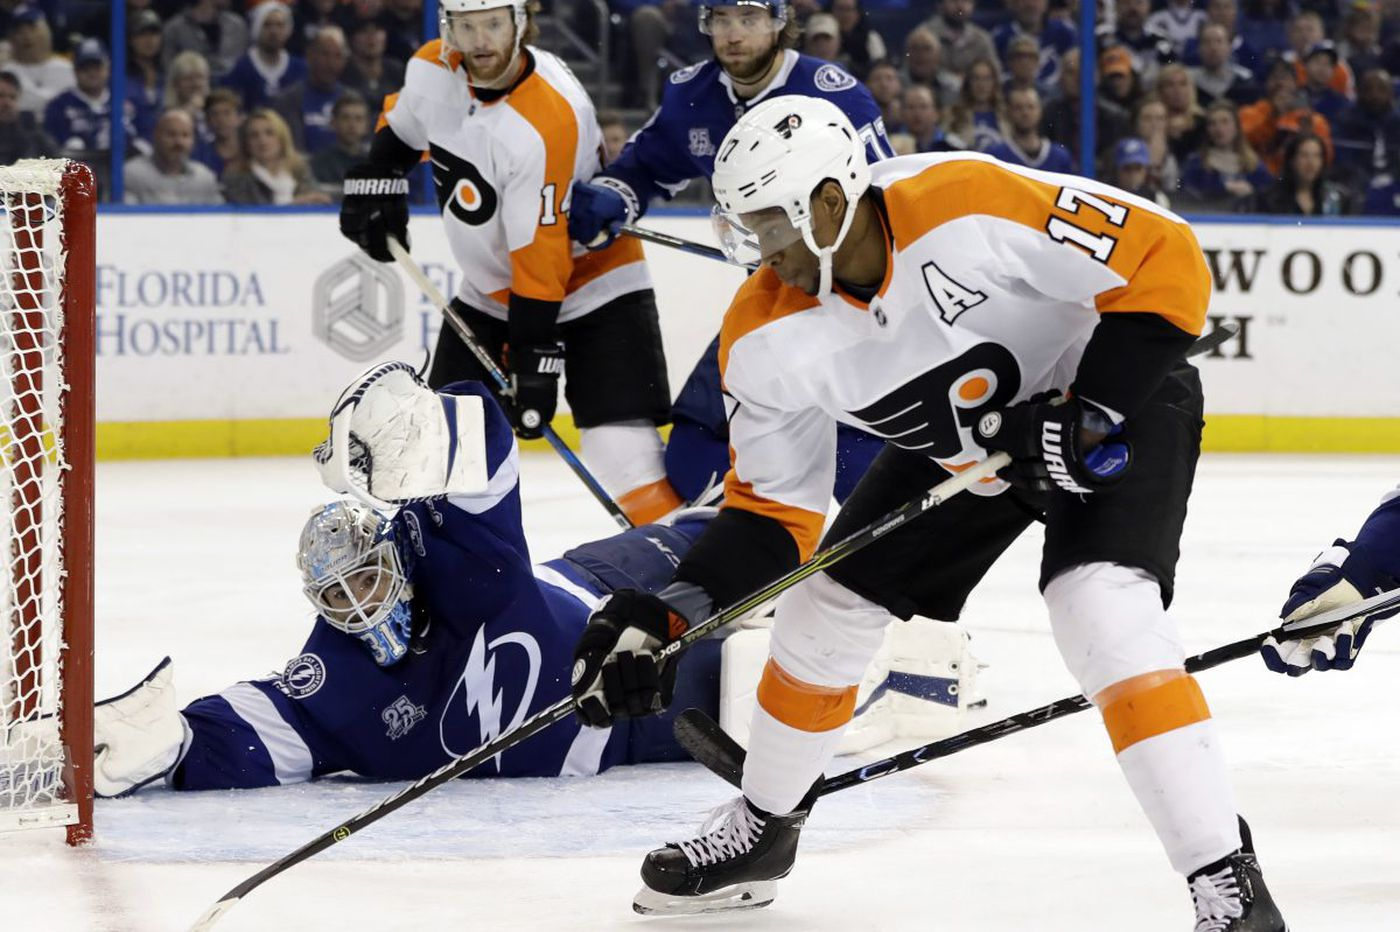 Flyers will try to keep winning streak alive against powerful Lightning